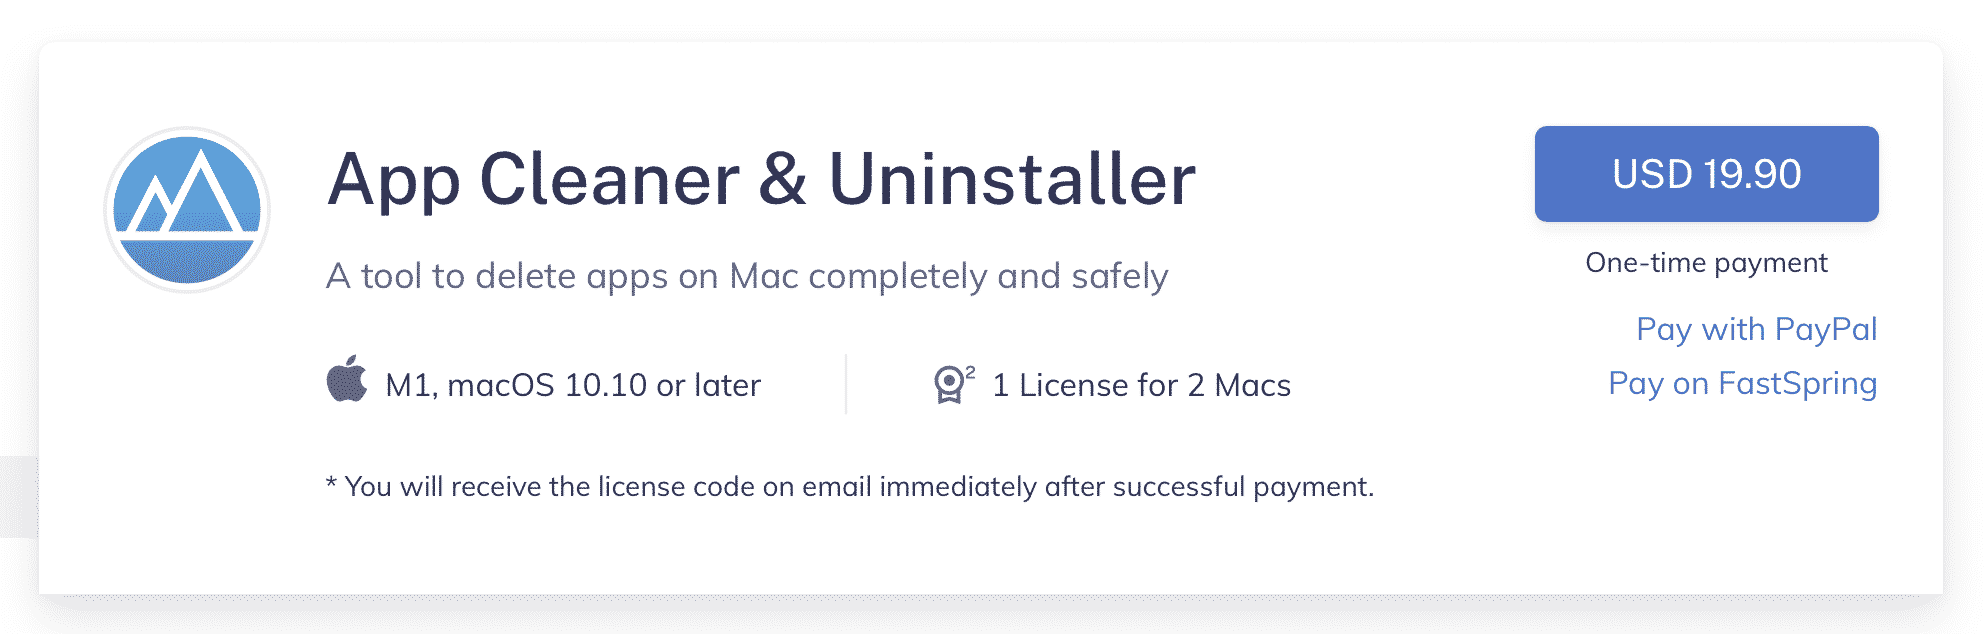 Purchase web page for App Cleaner Uninstaller